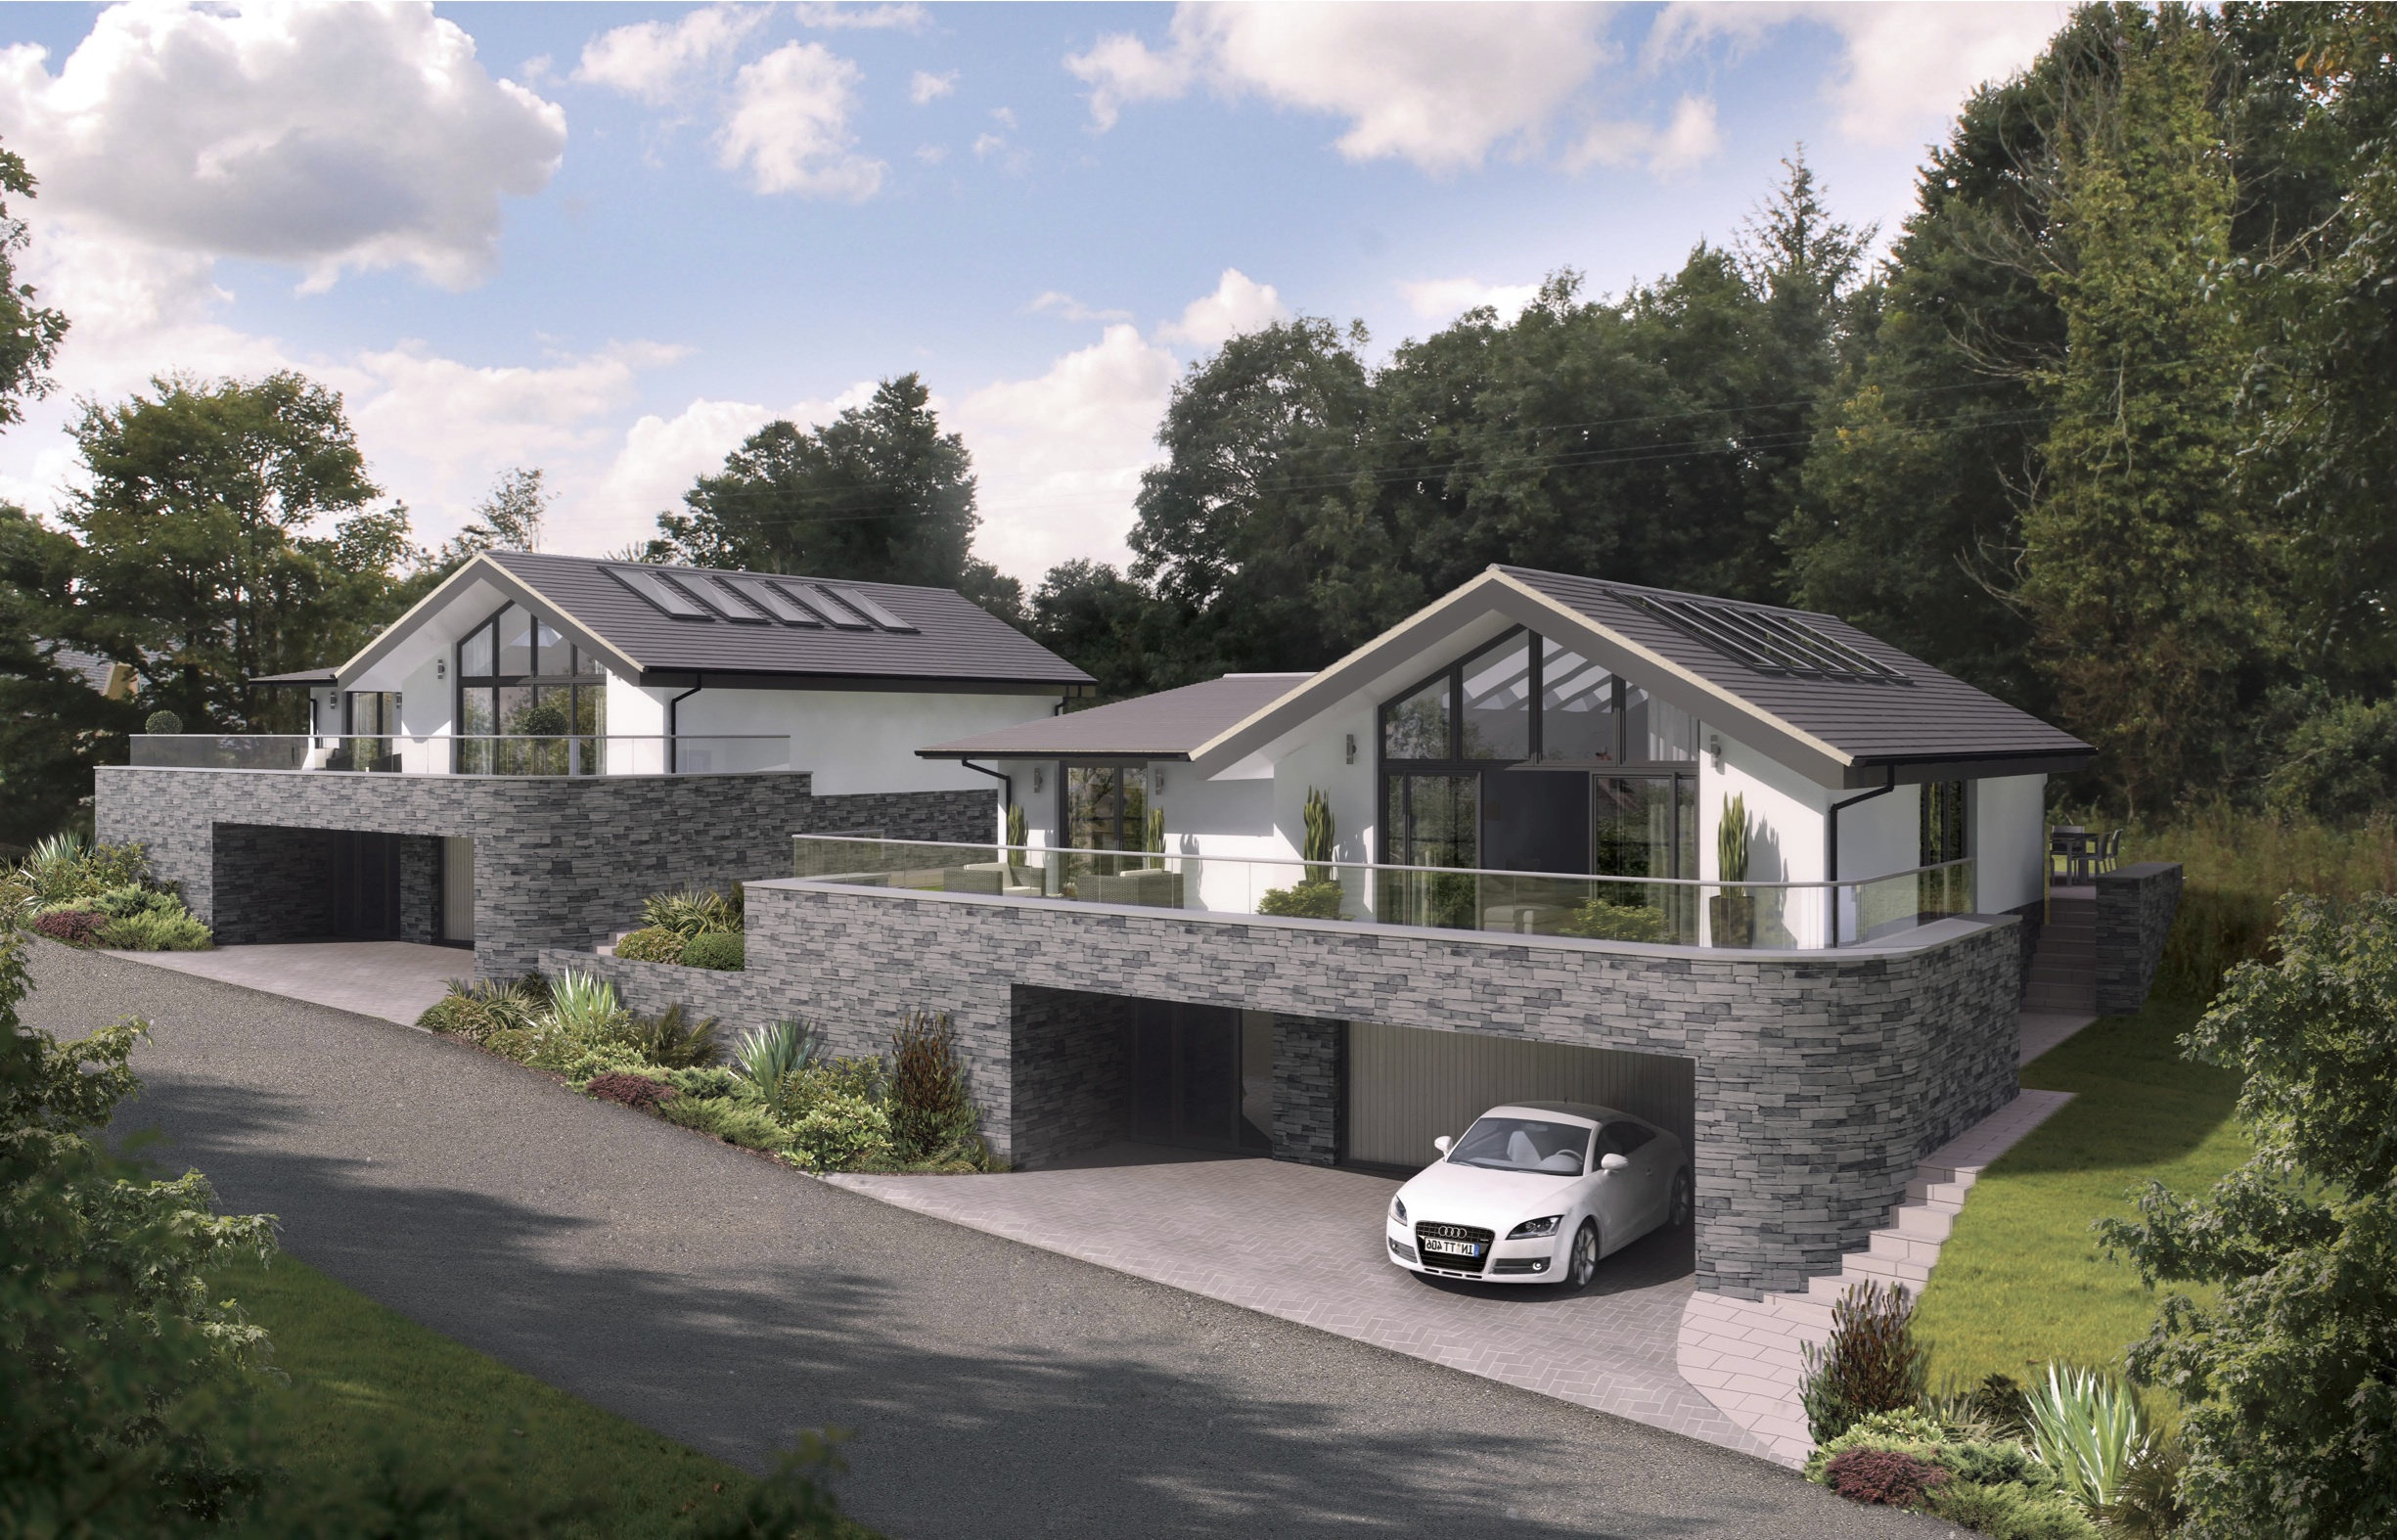 Scandinavian homes has recently signed a deal to provide two luxury holiday homes on the north coast of cornwall these beautiful four bedroom luxury homes